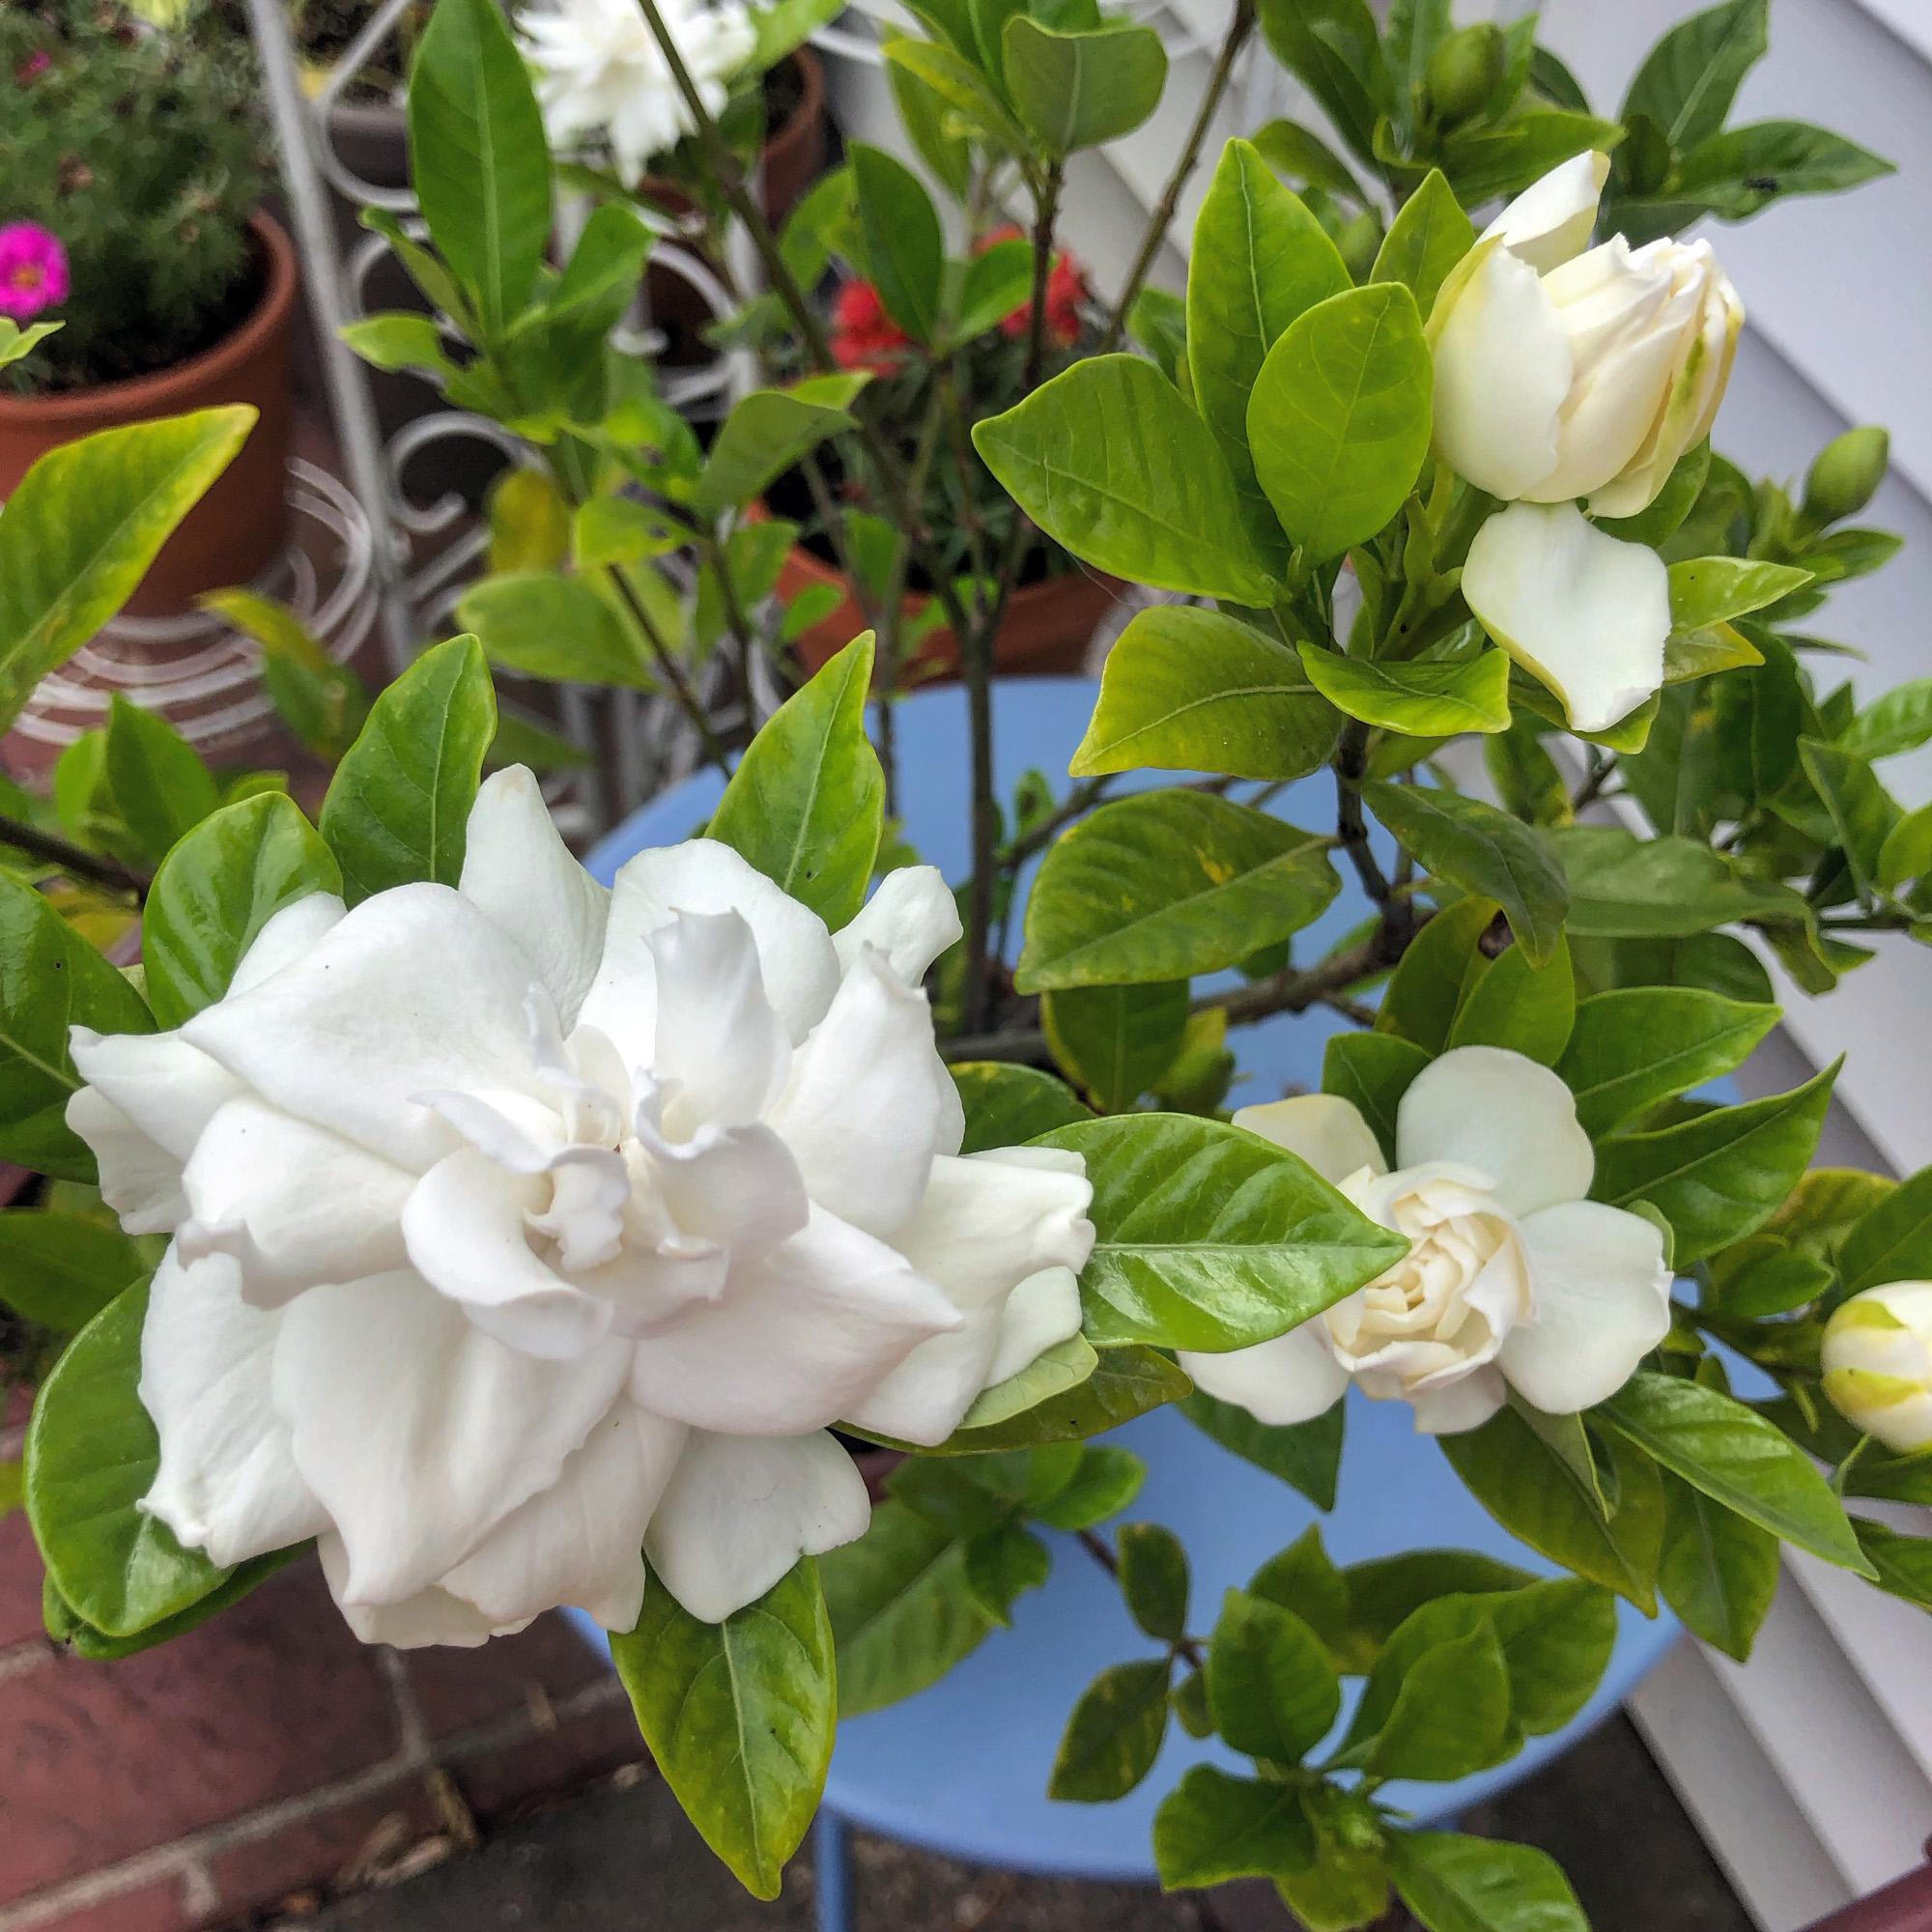 First time I've kept a gardenia alive for so long and had it flower a second season